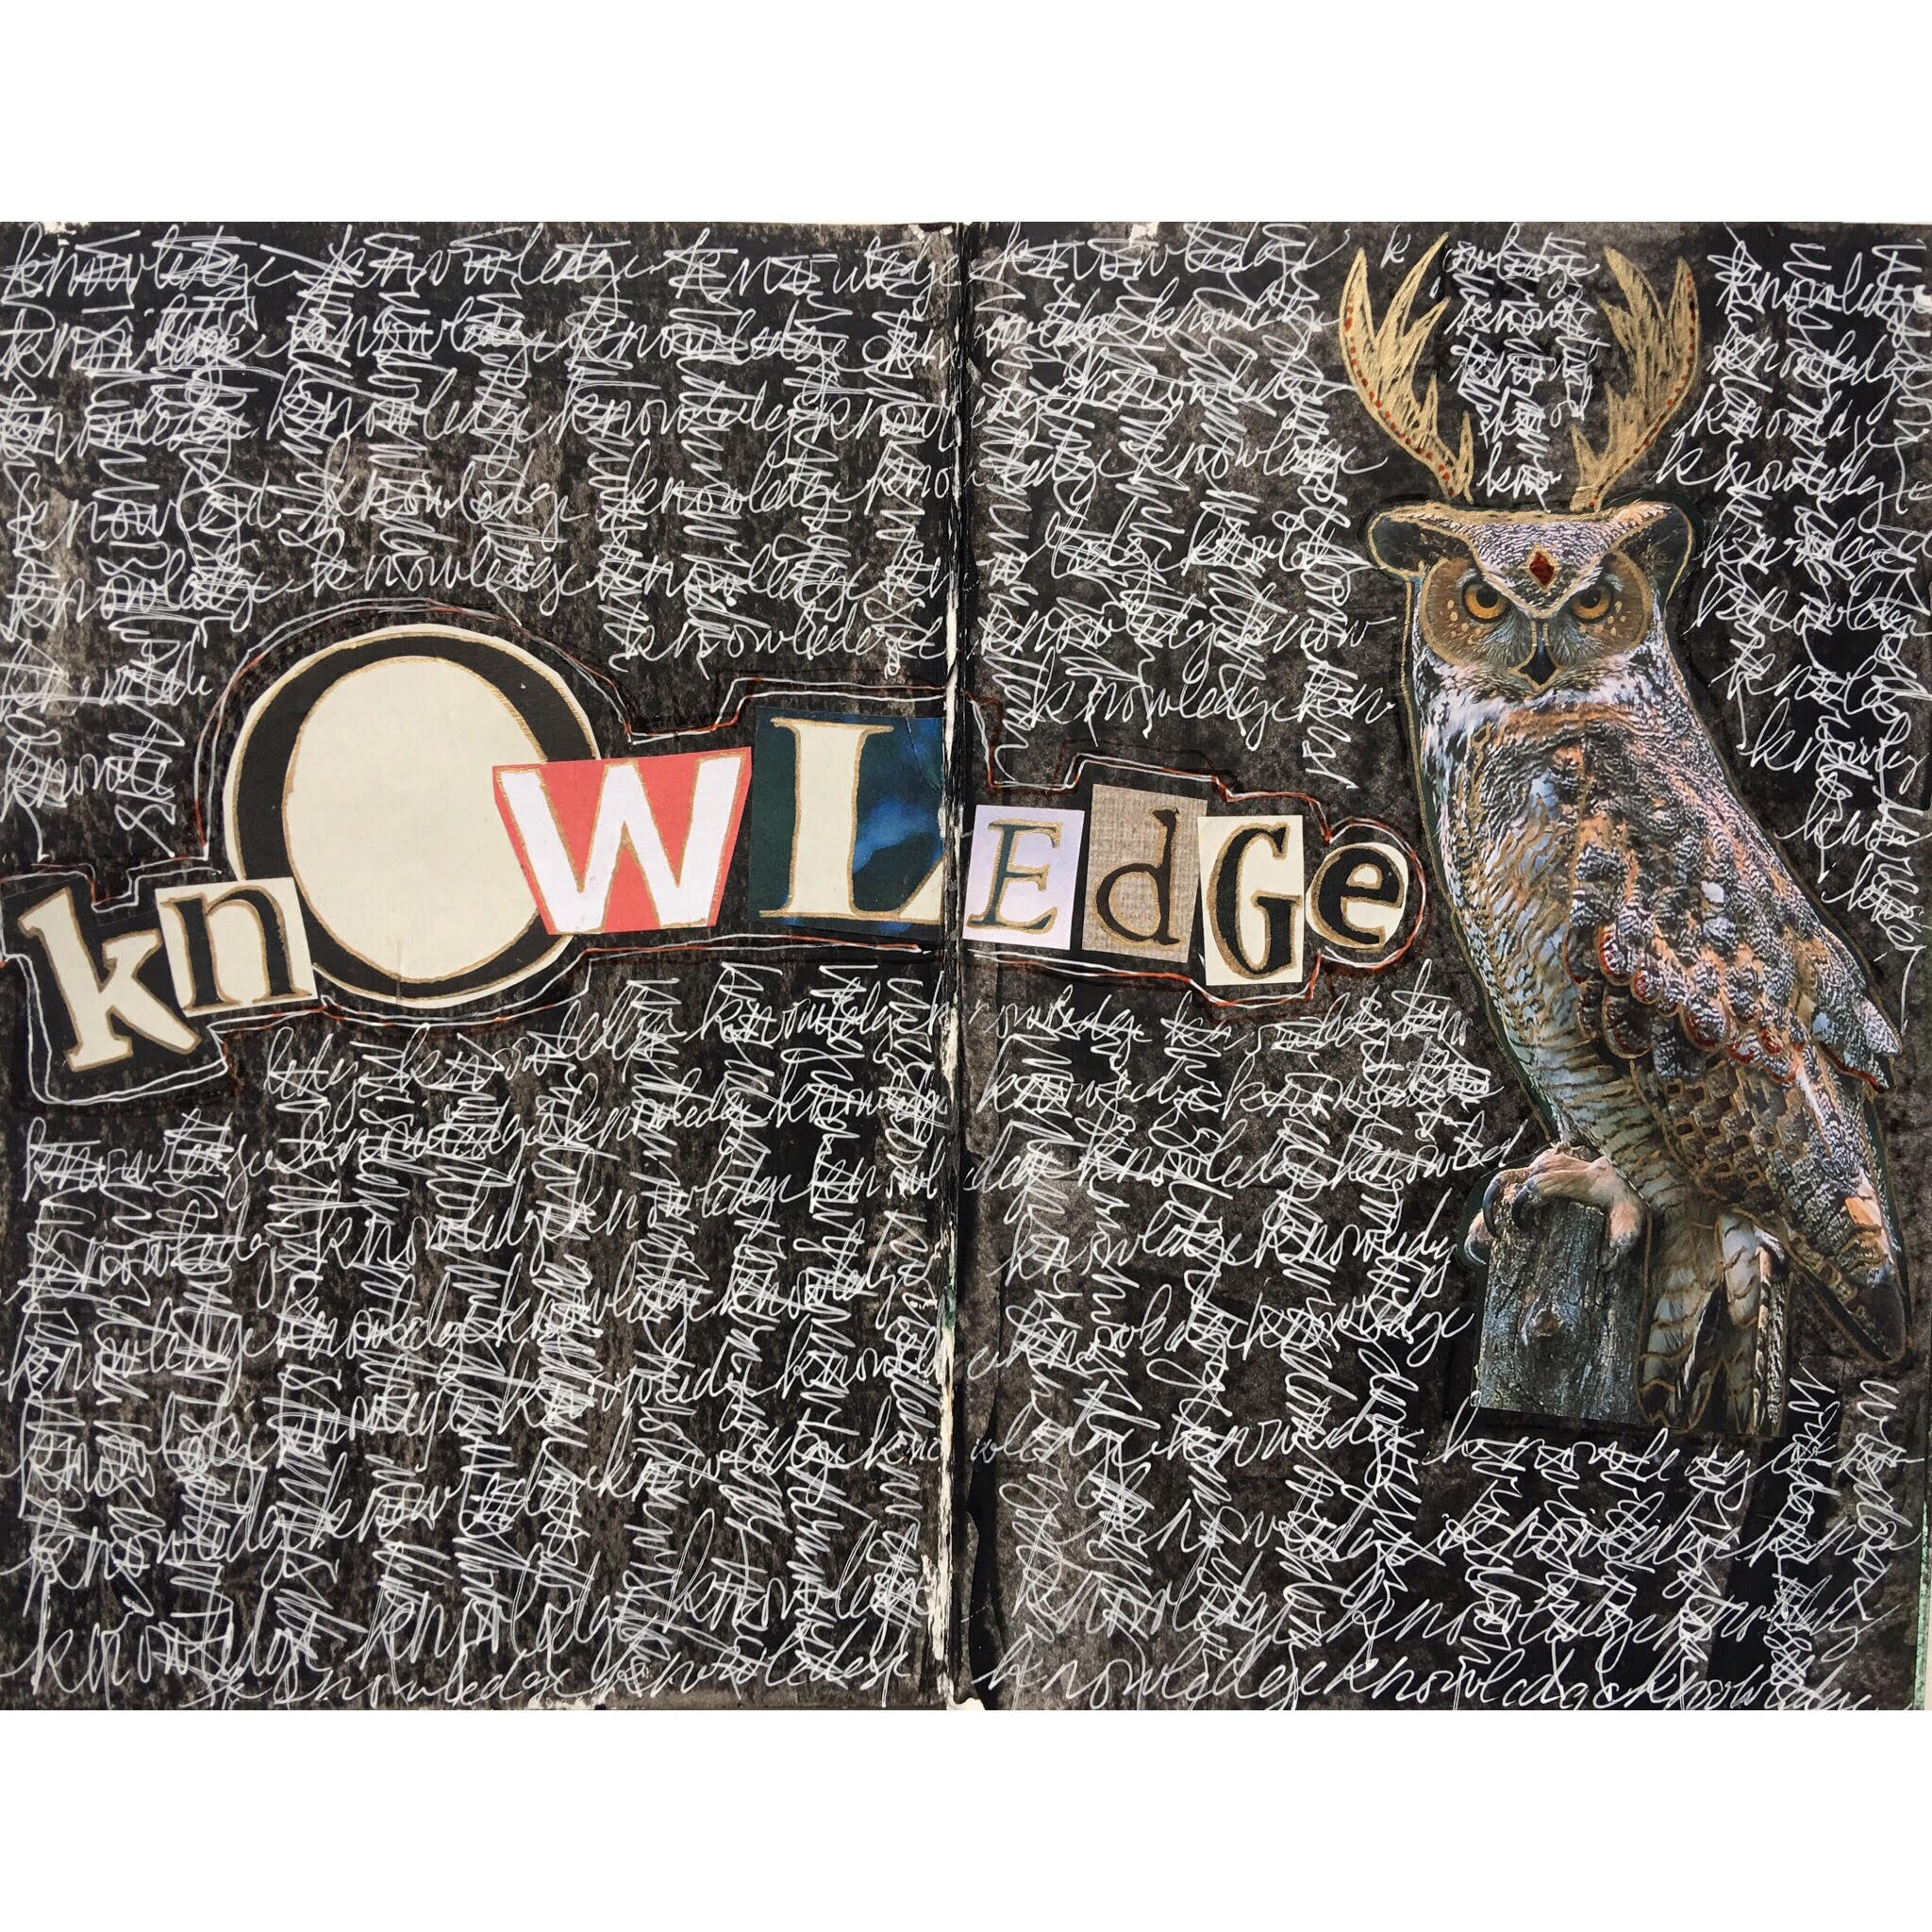 The word OWL is in the middle of knOWLedge. Seems fitting.